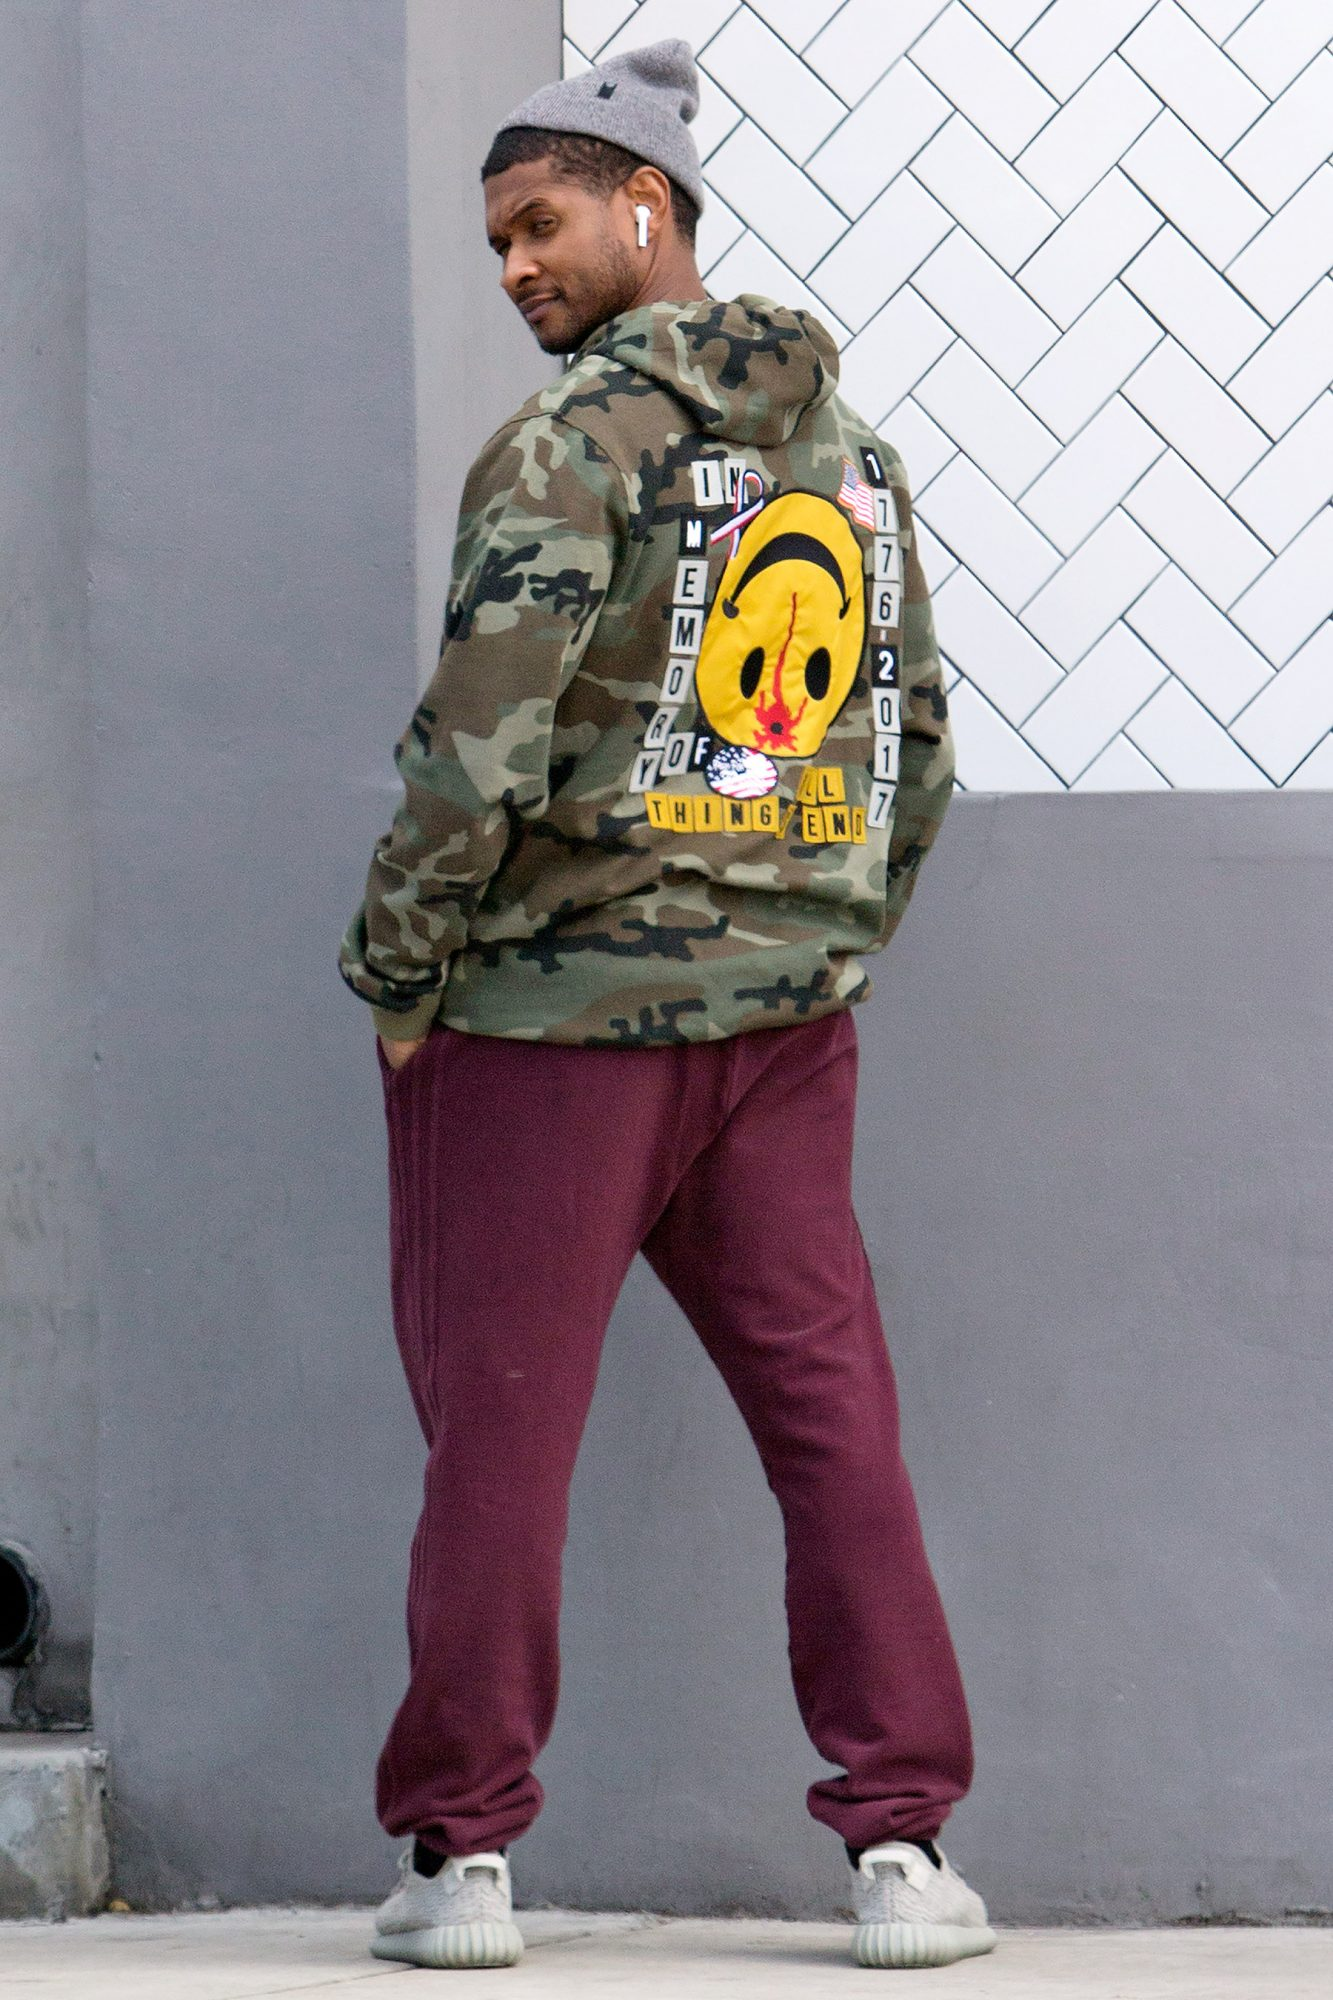 EXCLUSIVE: Usher seen for the first tim since announcing his divorce makes a Political Statement on the back of his jacket as he was seen leaving lunch at 'Crossroads' in West Hollywood, CA